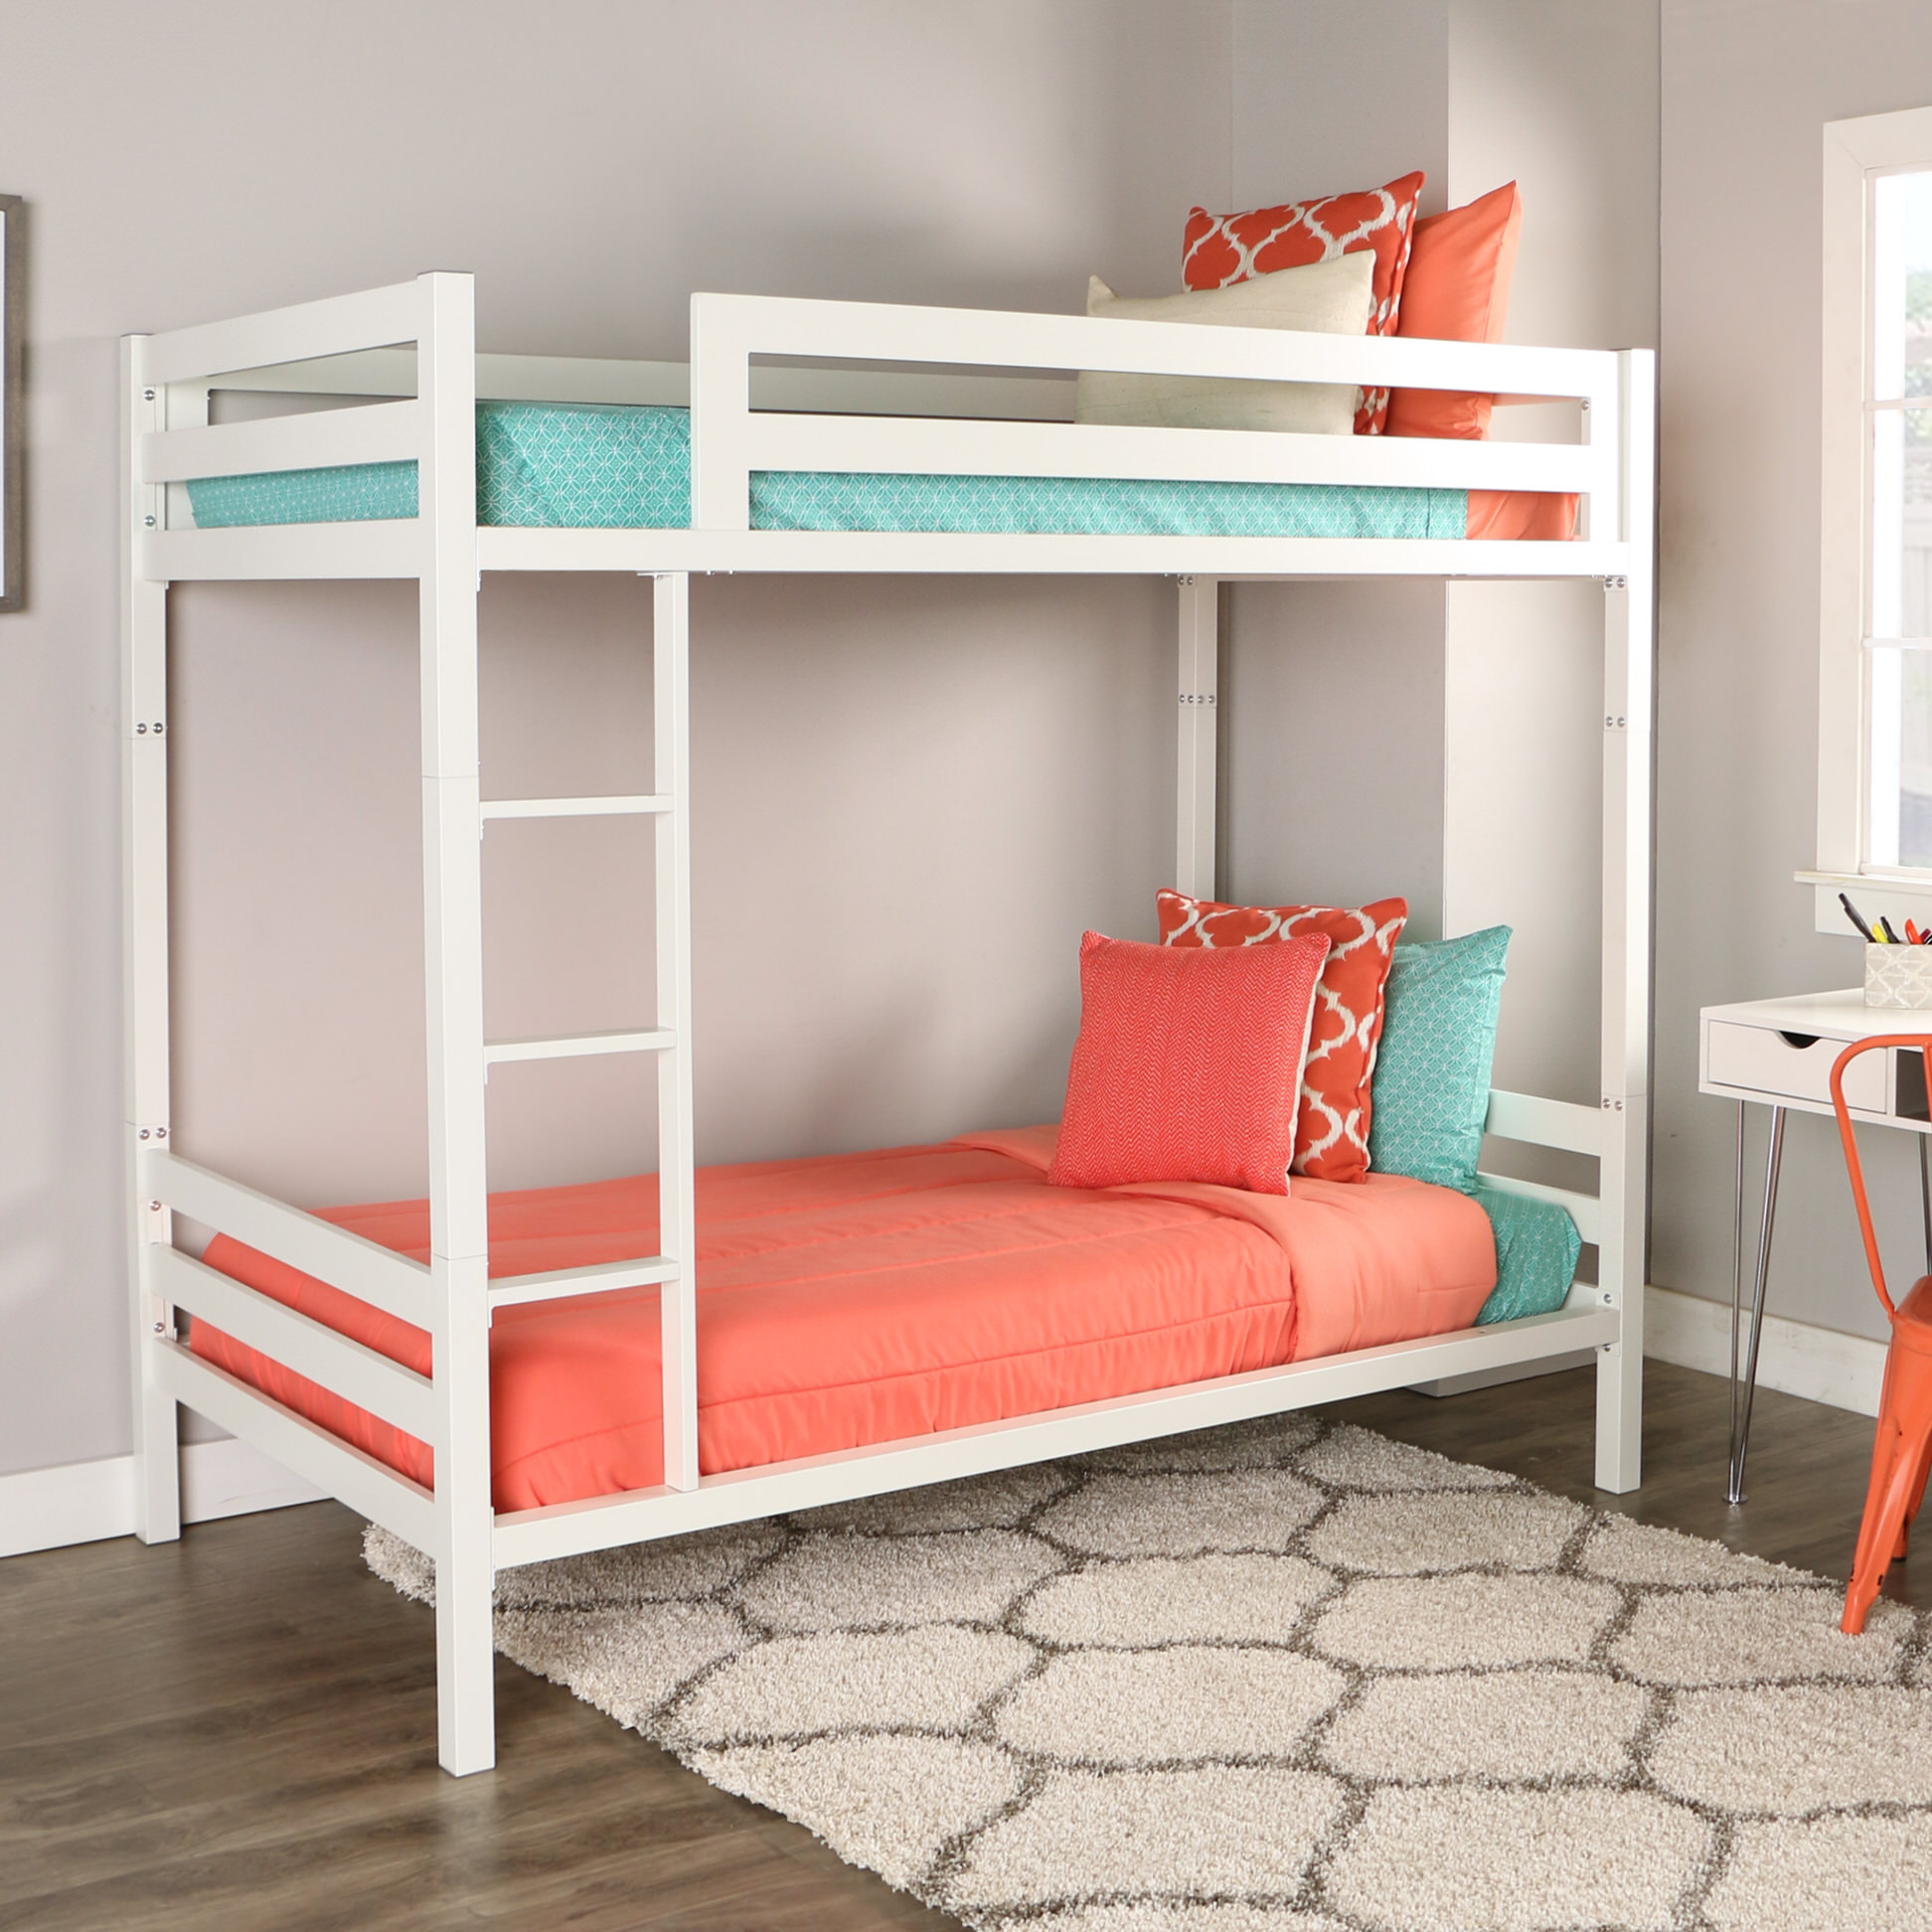 Diverting Bentley Twin Over Twin Metal Bunk Bed By Walker Edison Bentley Twin Over Twin Metal Bunk Bed By Walker Edison Bunk Beds That Separate Bunk Beds Wayfair baby White Bunk Beds